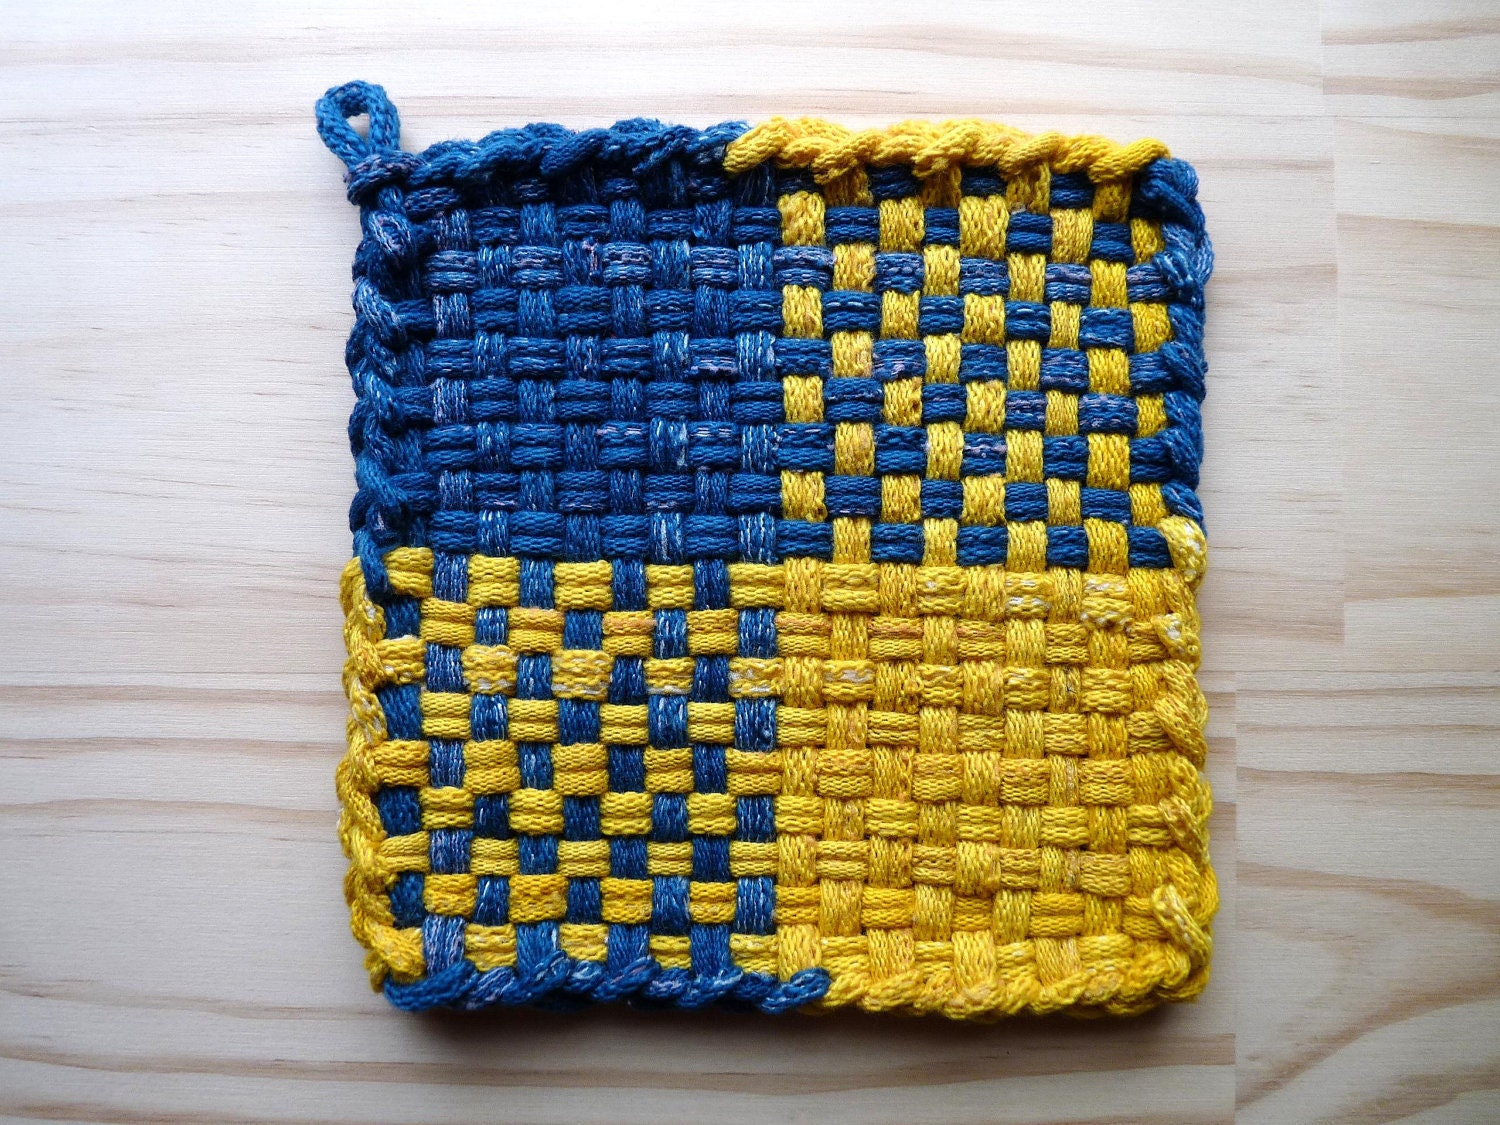 Knitting Pattern For A Pot Holder : potholder loom patterns - Google Search Knitting and other crafty t?